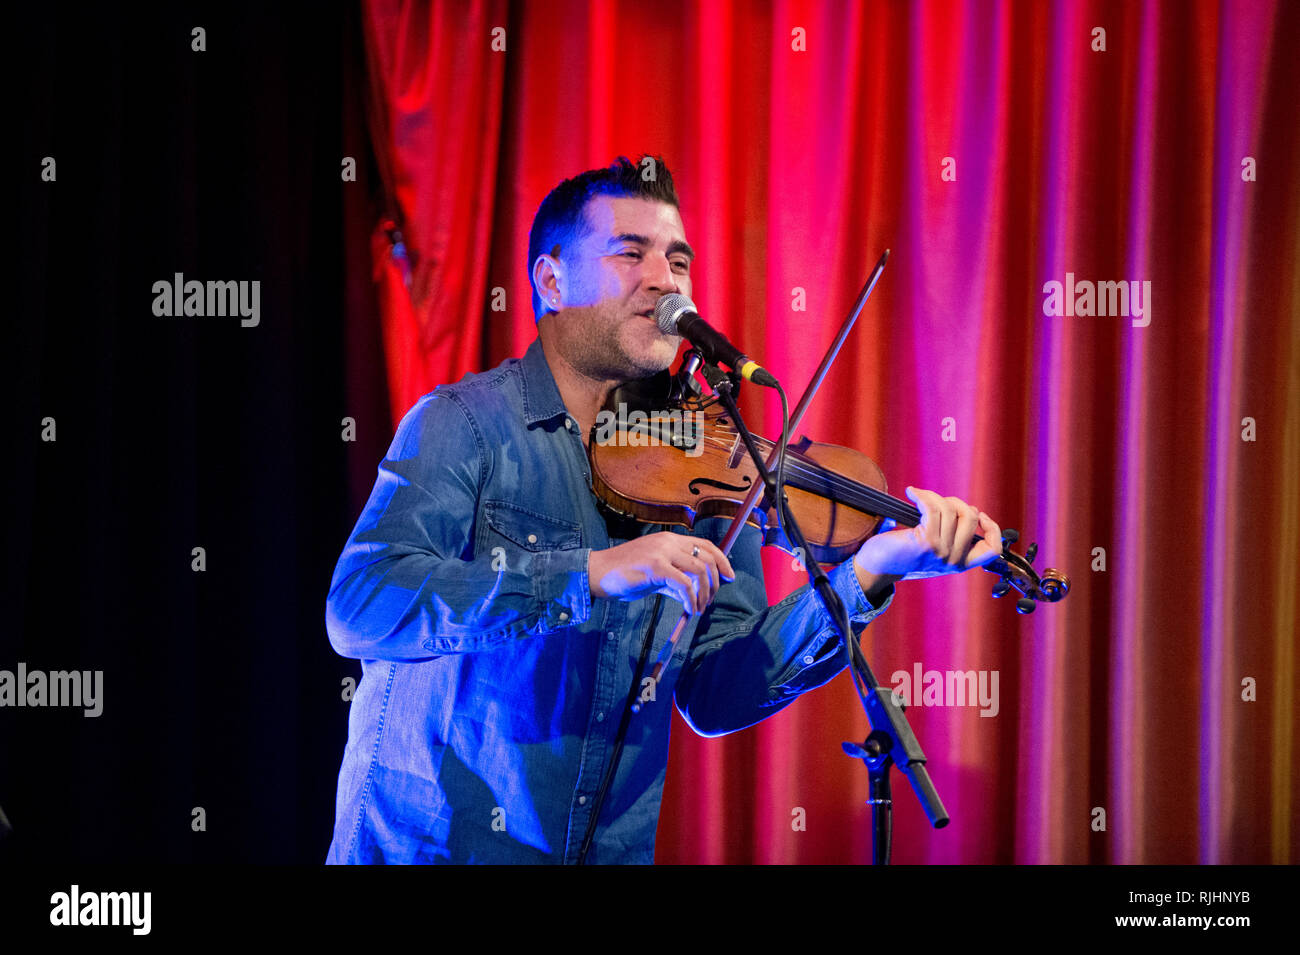 Groupe folklorique canadienne-française, Vishten en concert, la Live Room, Saltaire, West Yorkshire. Pascal Miousse violon. Photo Stock